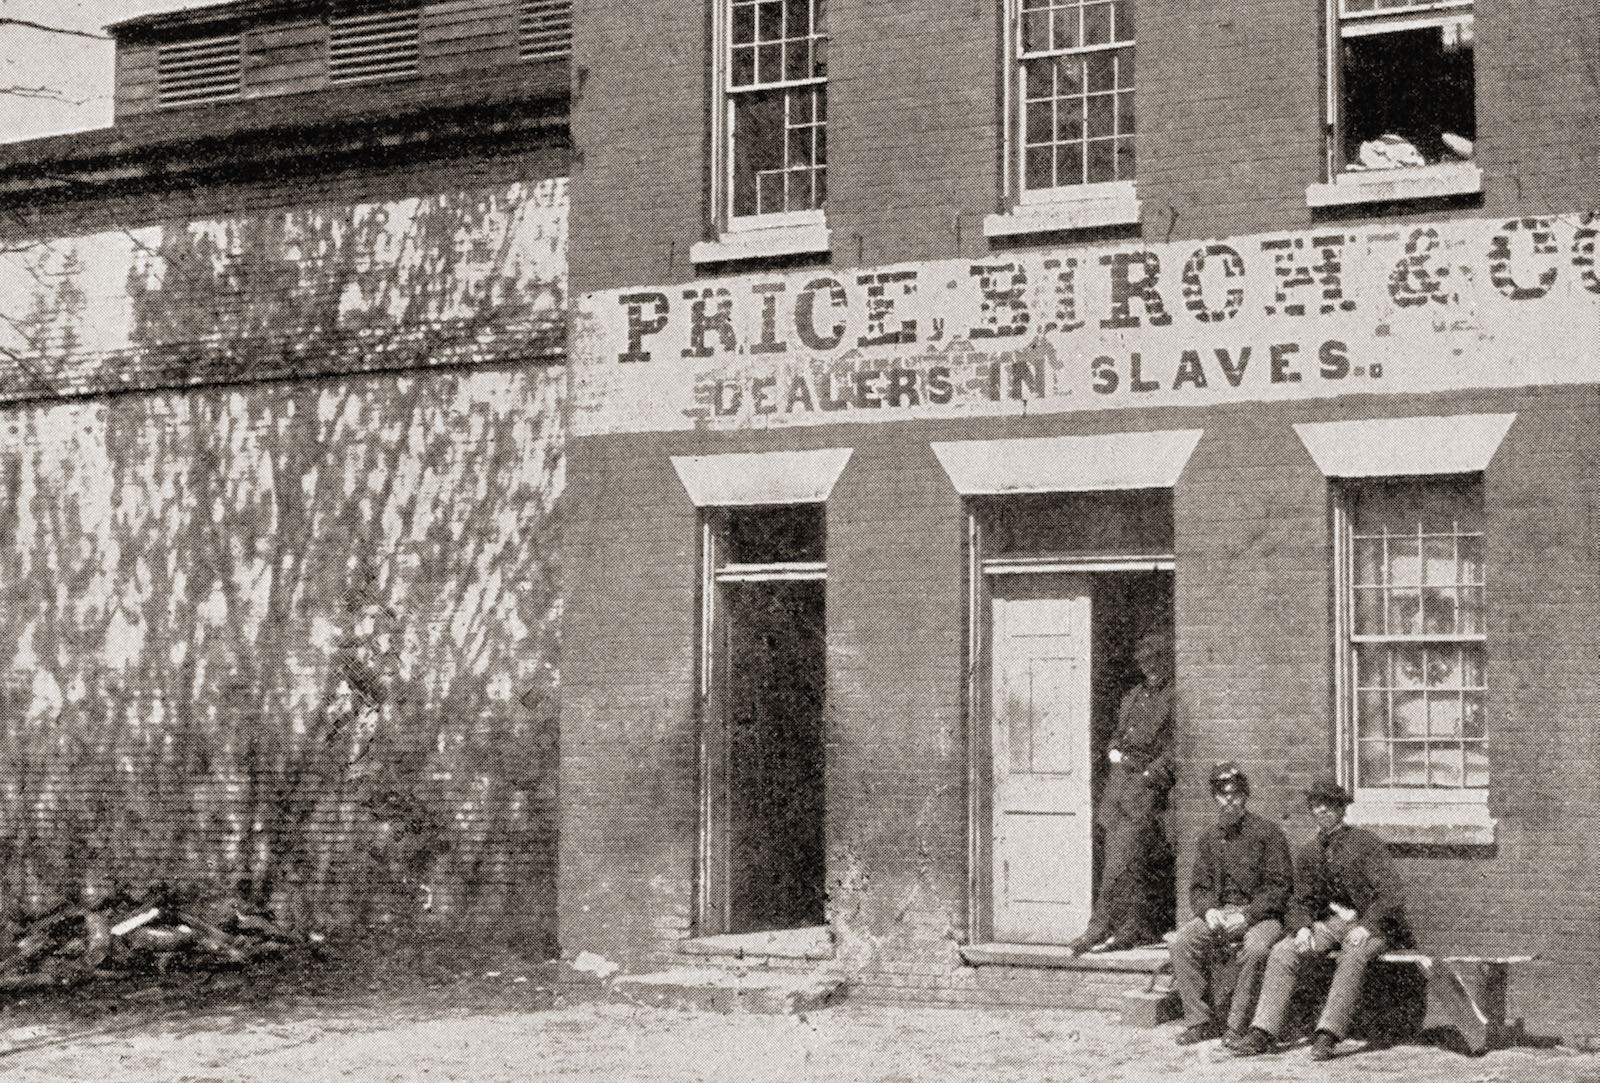 Union soldiers guarding the premises of a former slave dealer, Alexandria, Virginia, 1865